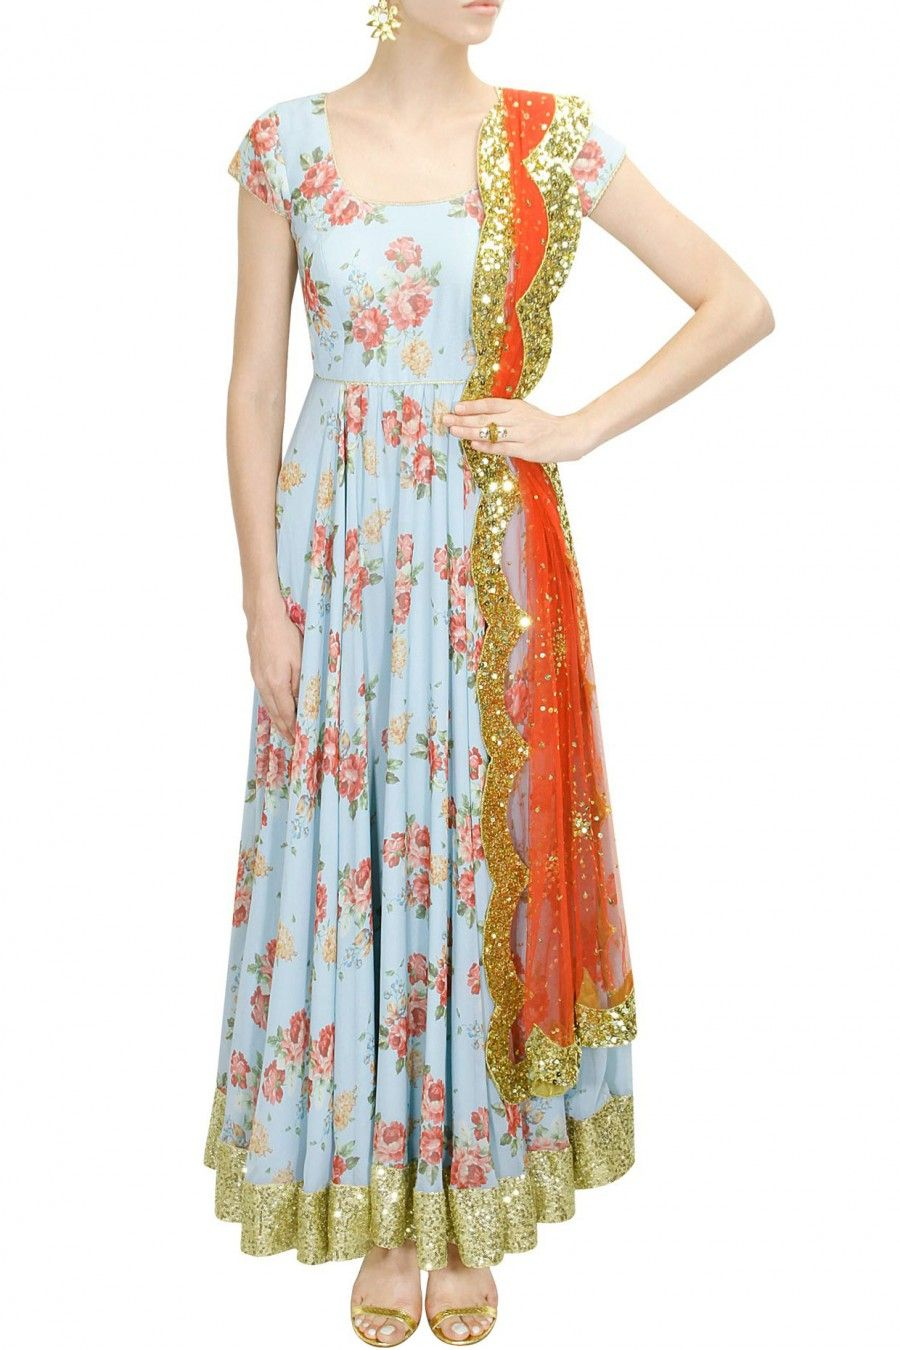 8d4a651cef Blue floral print and peach pink embroidered anarkali set available only at  Pernia's Pop-Up Shop.